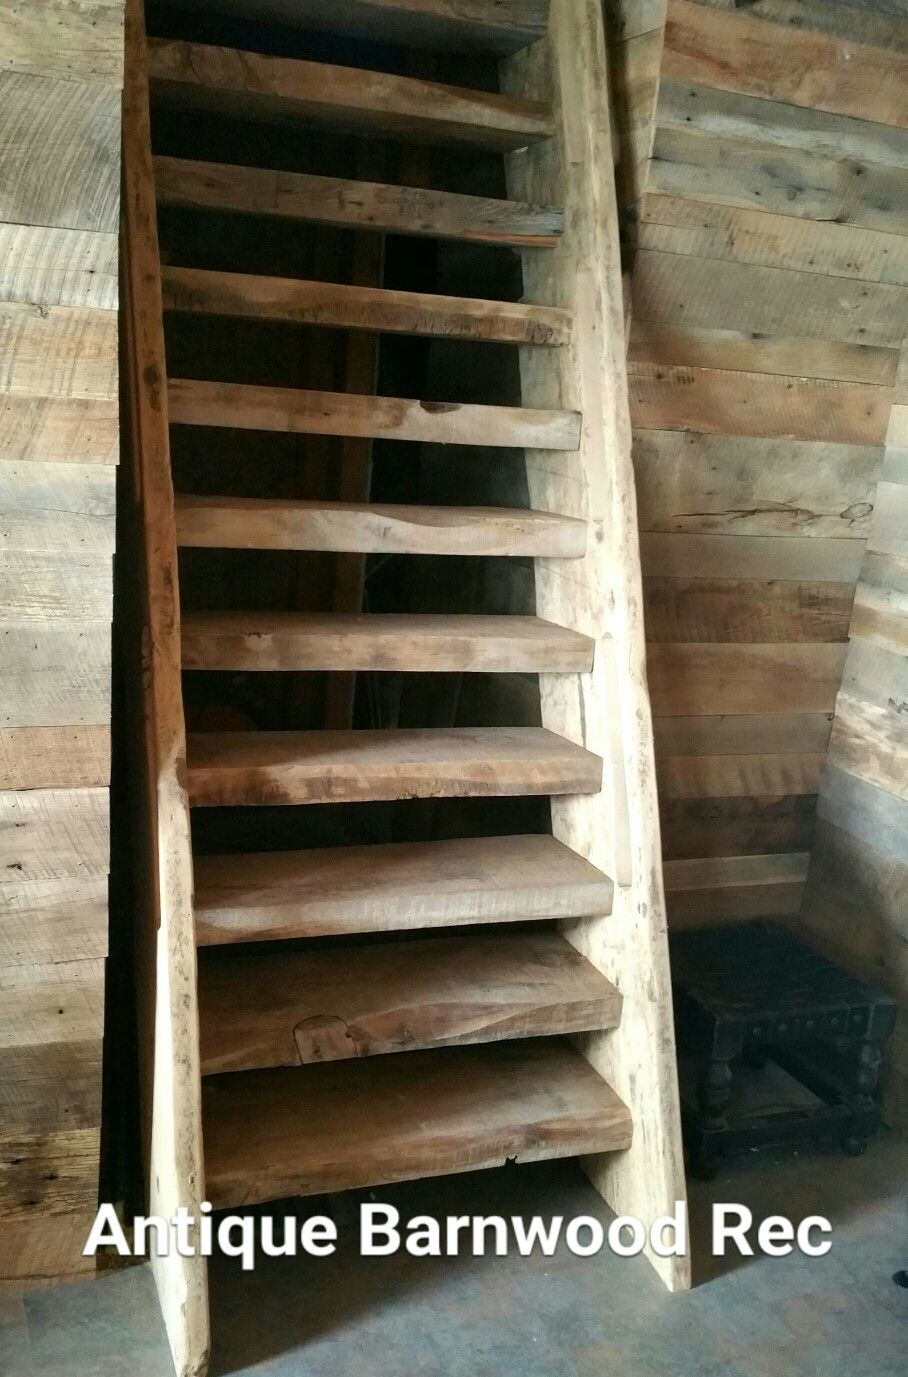 We Can Build Your Ships Ladder From Antique Barnwood Rustic Cabin Barnwood Barn Wood Ship Ladder Rustic